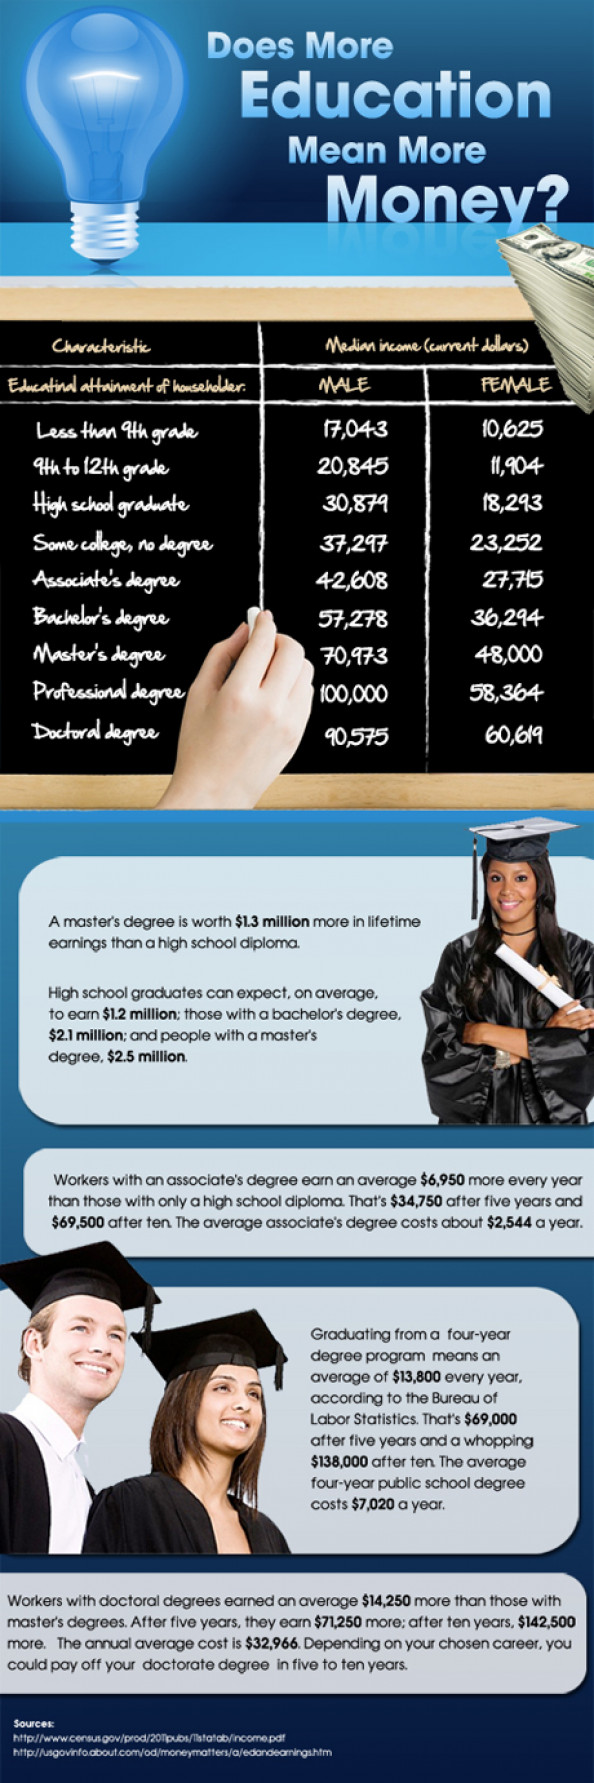 Does More Education Mean More Money? Infographic